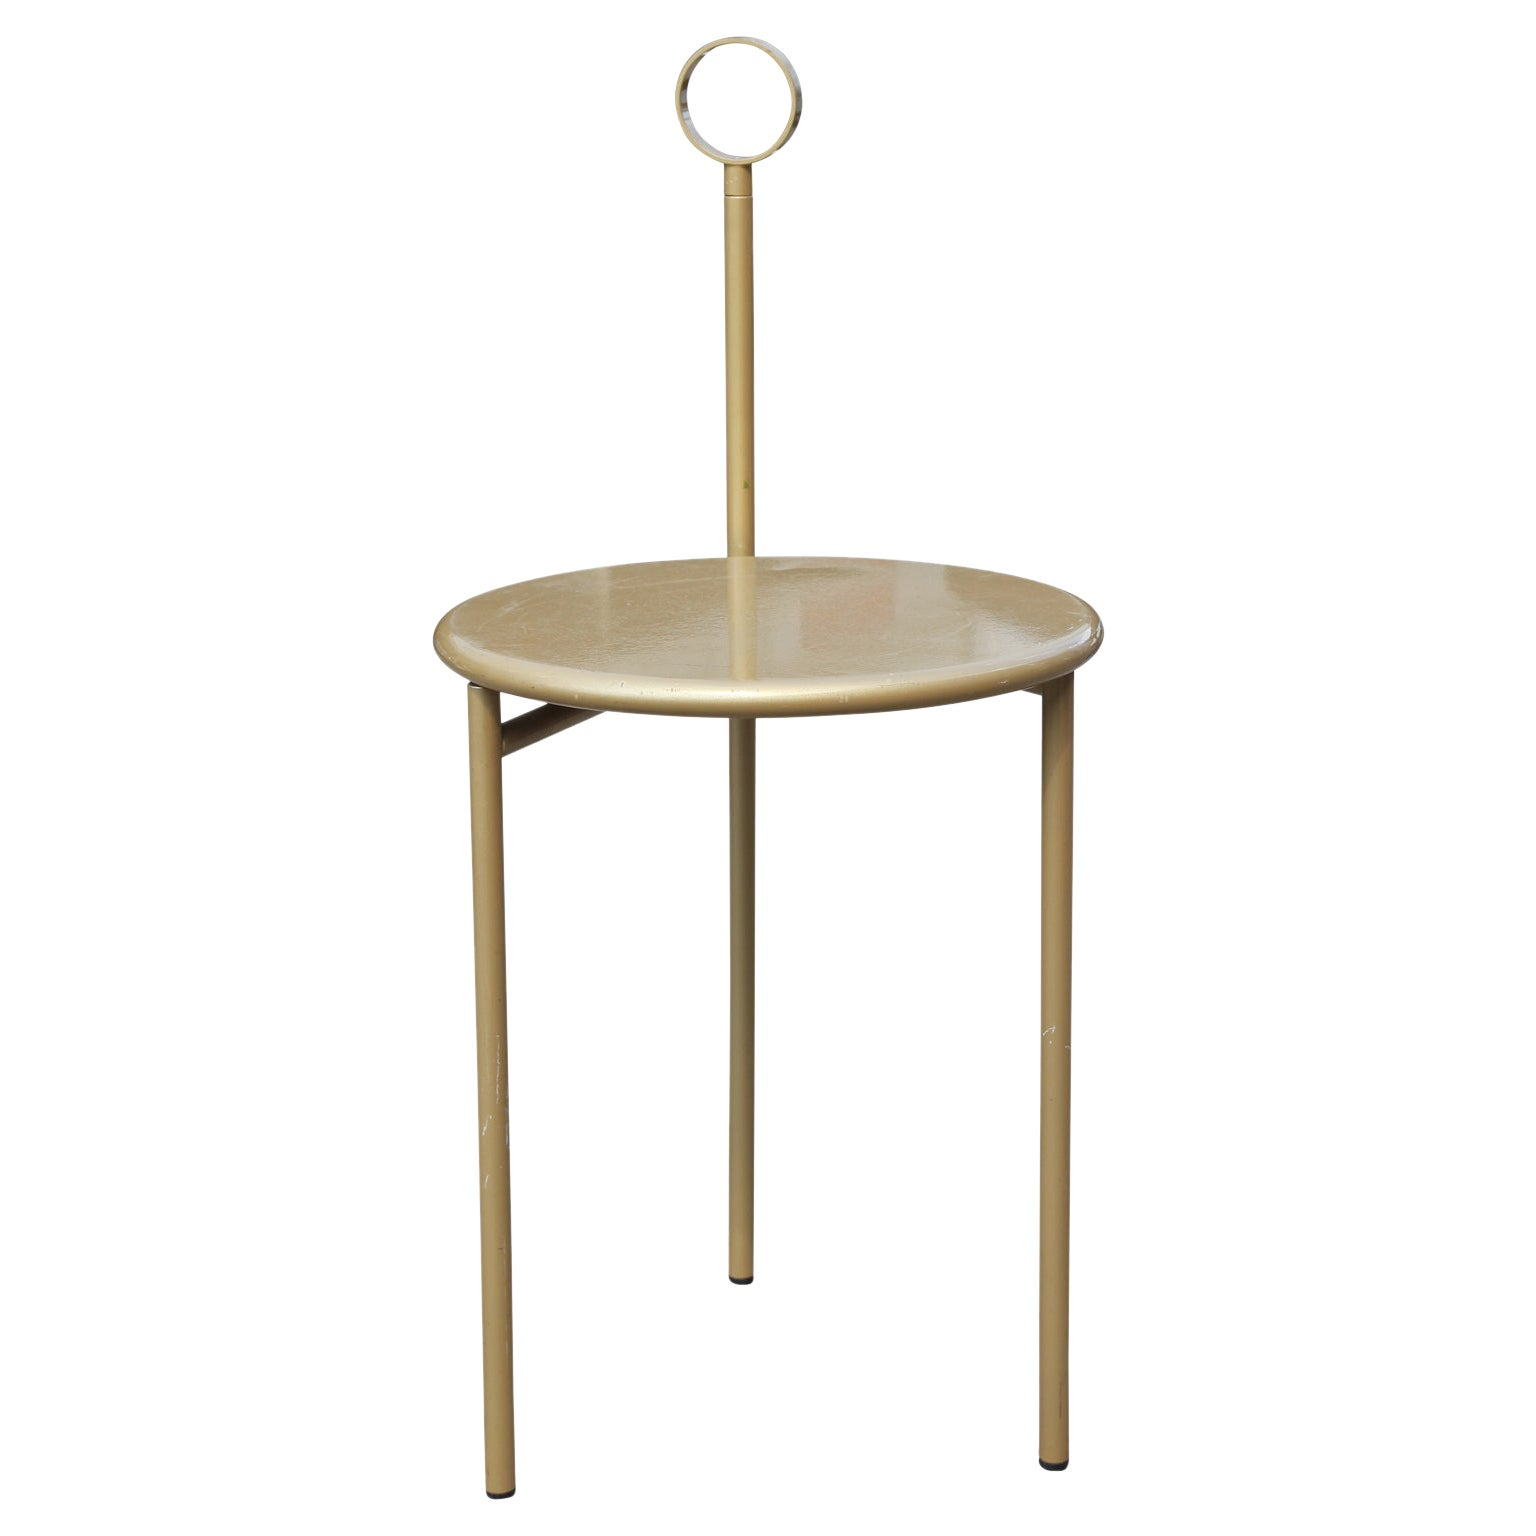 """Philippe Starck and Aleph Ubik for Driade 3 Leg Stool/ Chair """"Mickvill"""""""